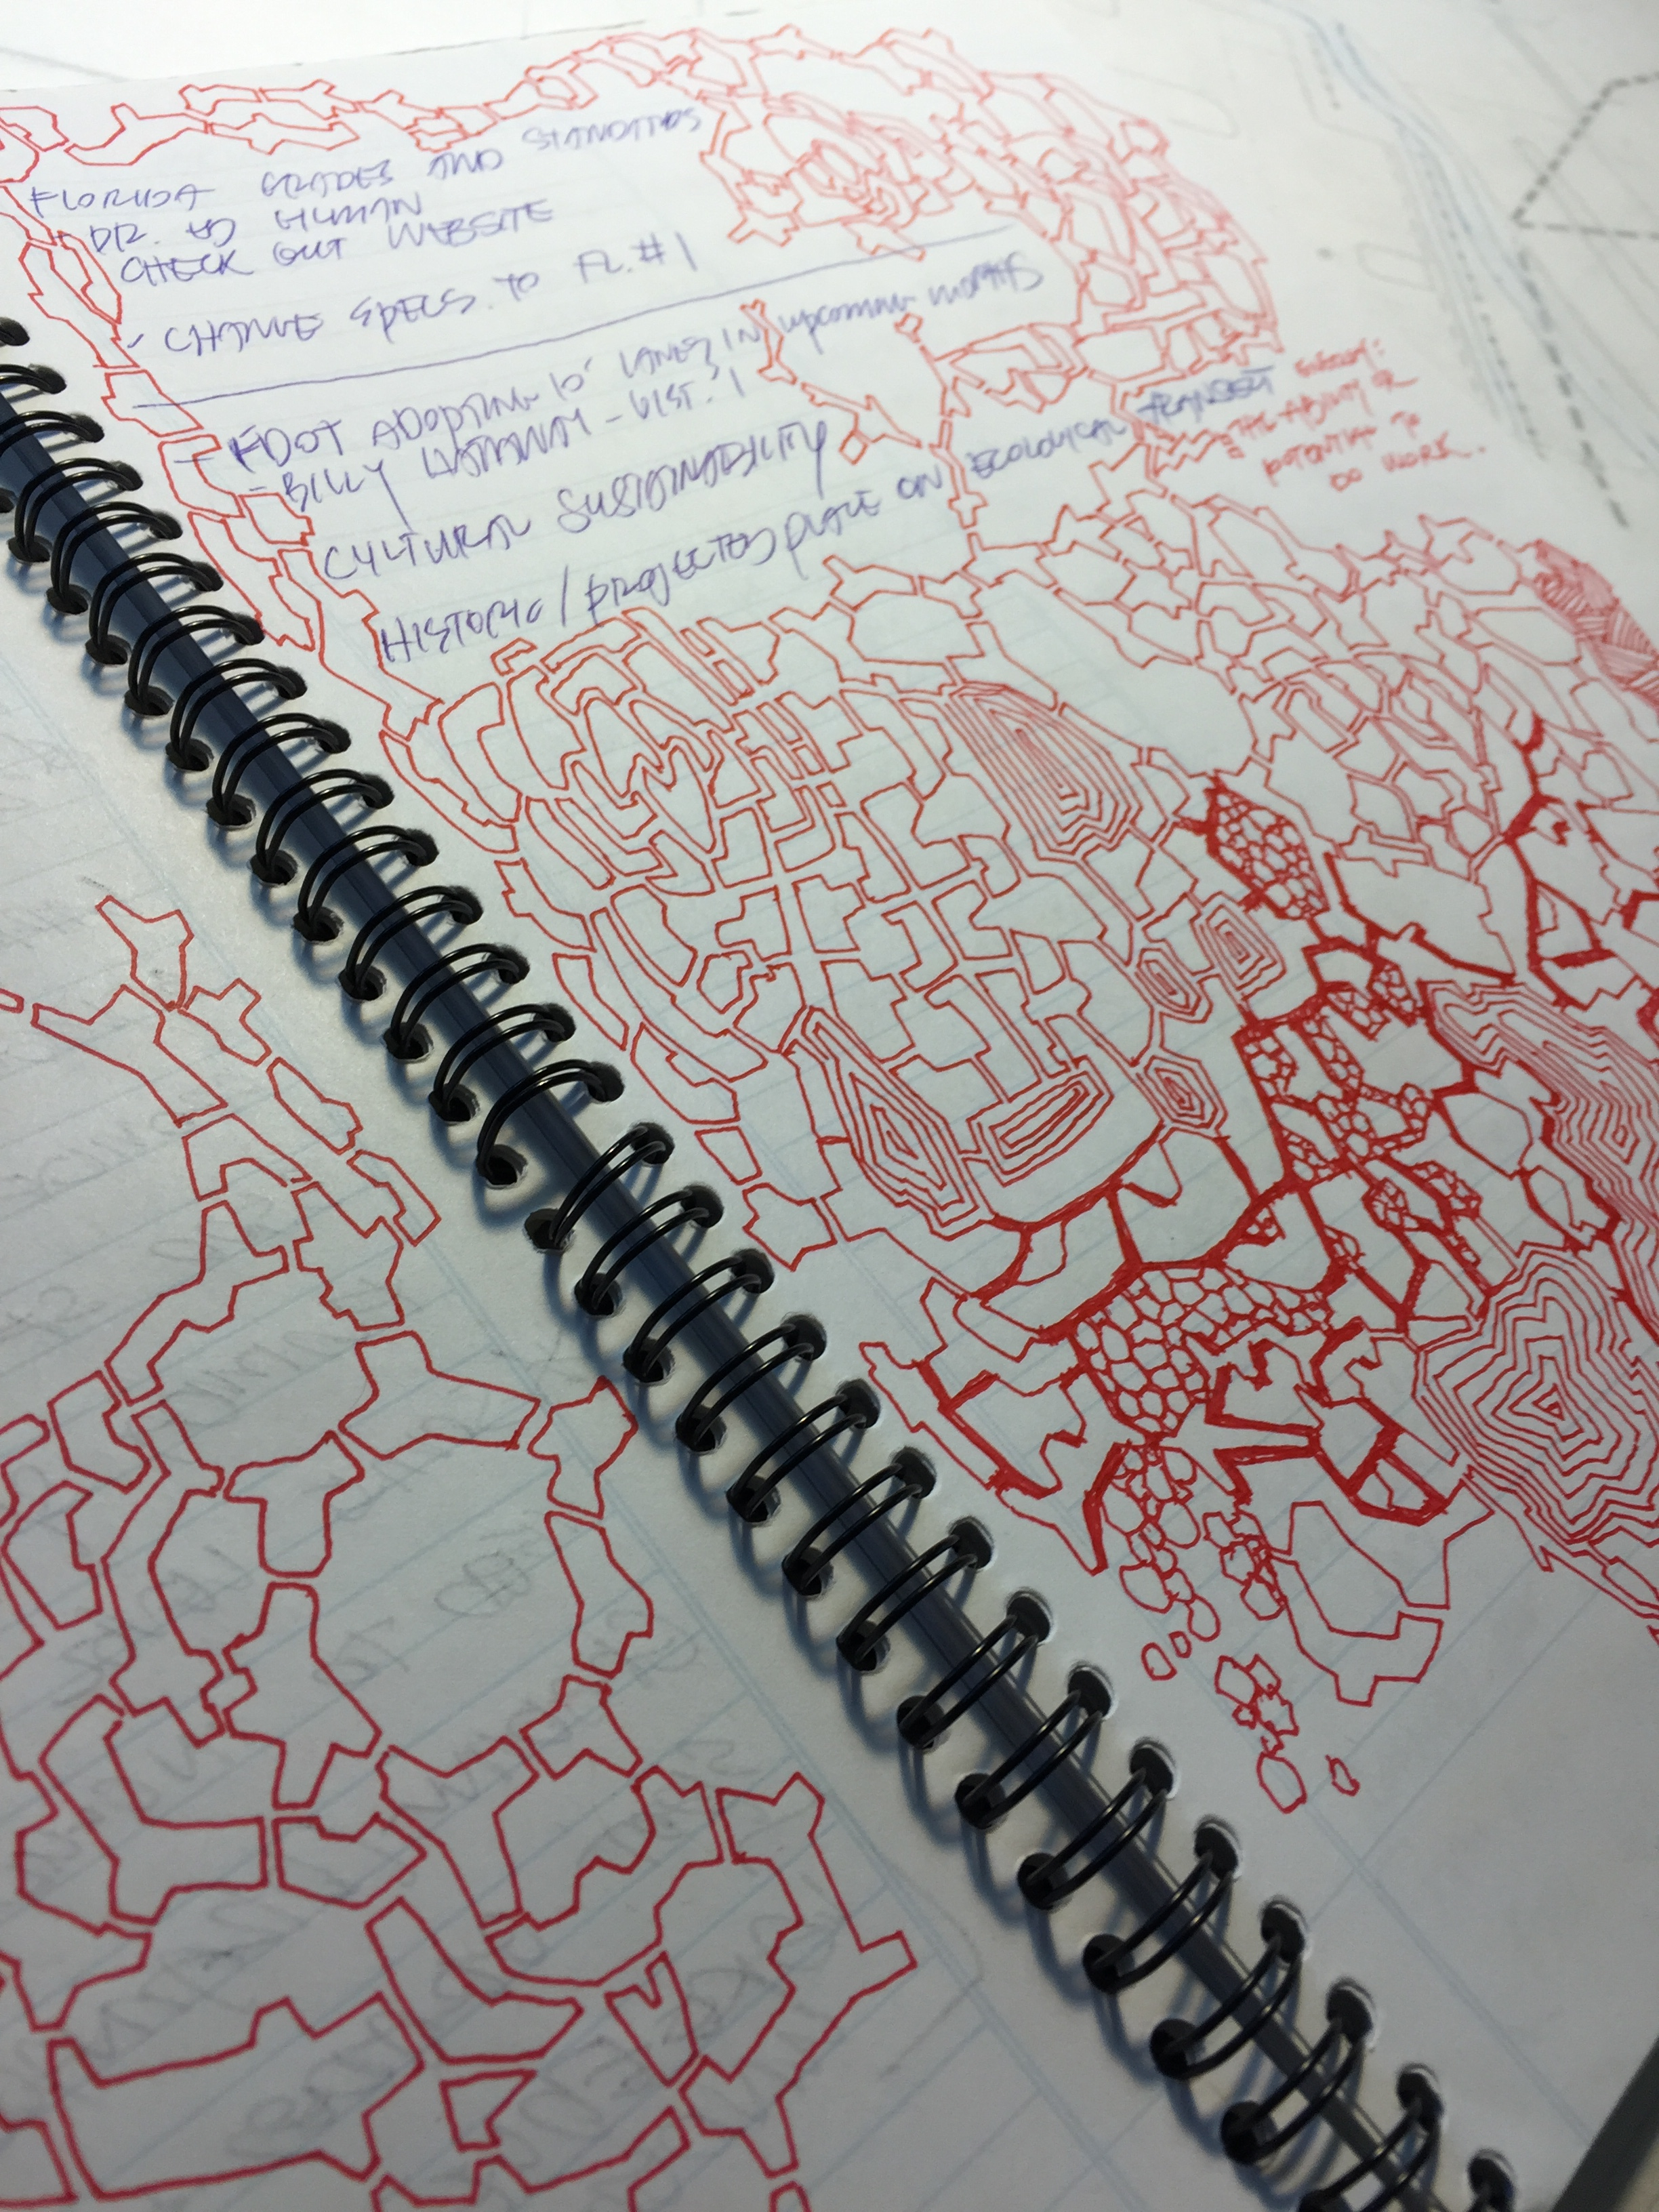 Doodling during meetings is important to me.I keep my notebooks not for the notes, but for the sketches in the margins and drawings across the pages. -